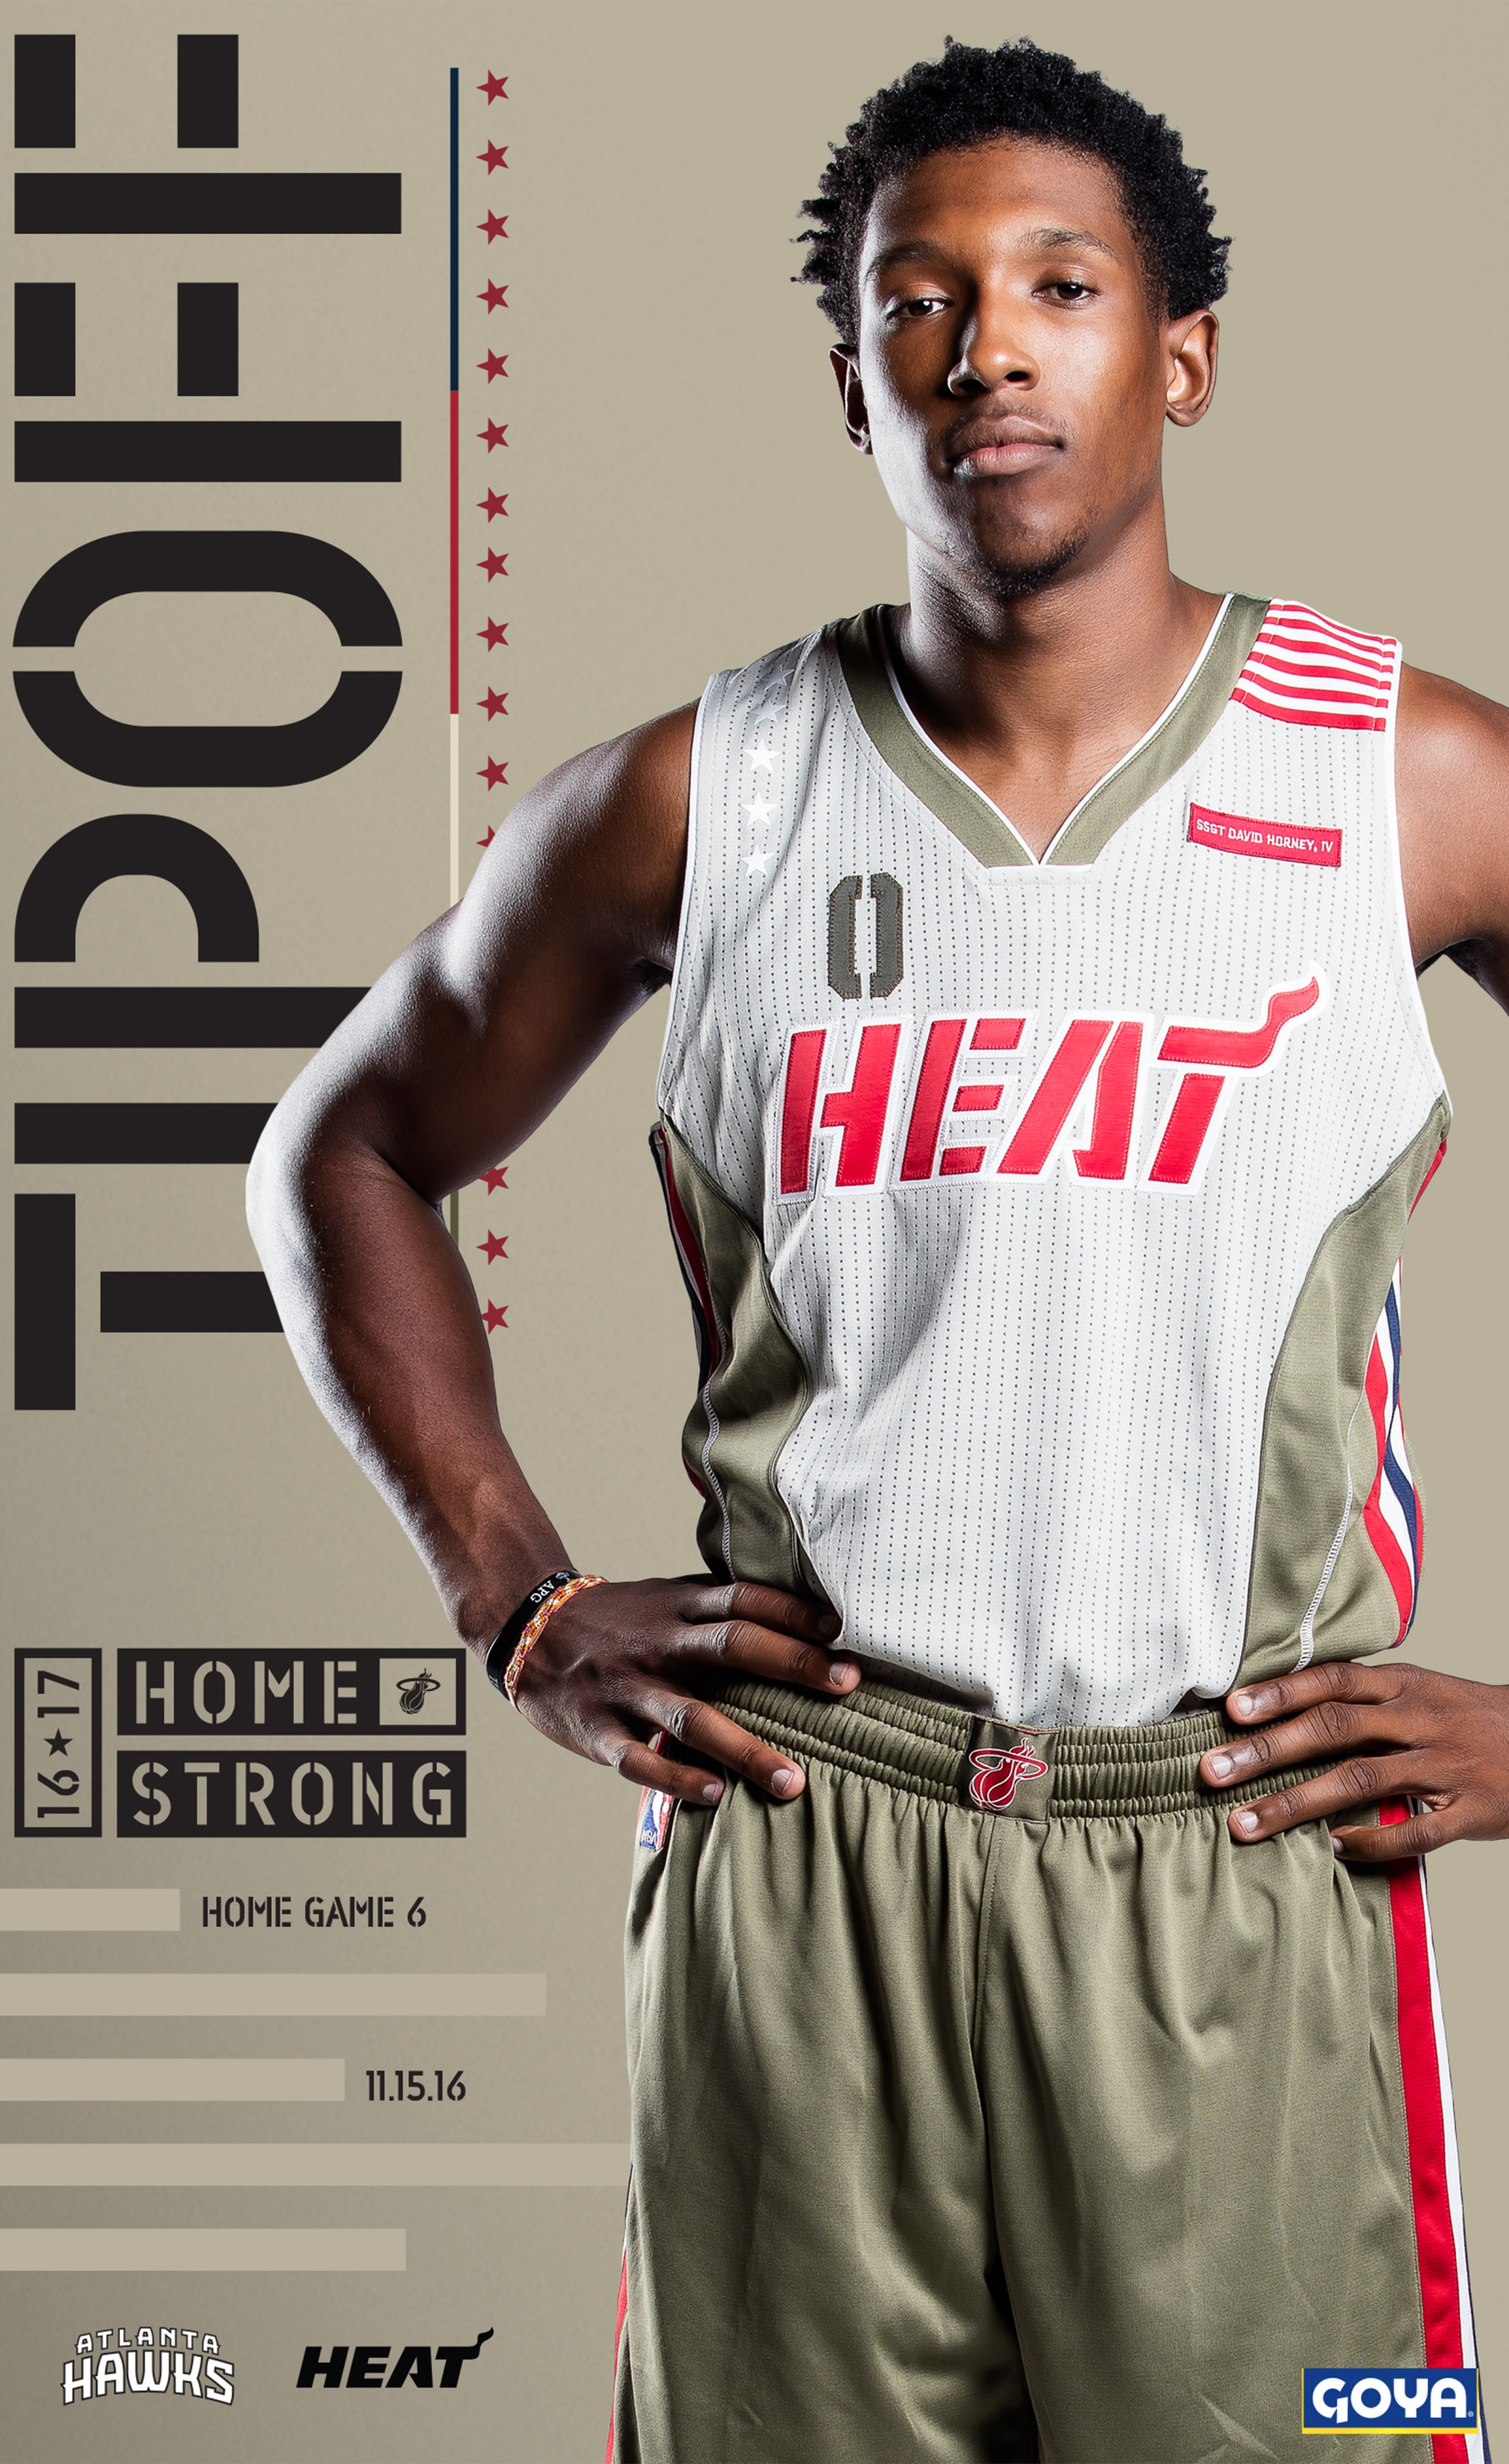 Thumbnail for 2016-17 Home Strong Campaign